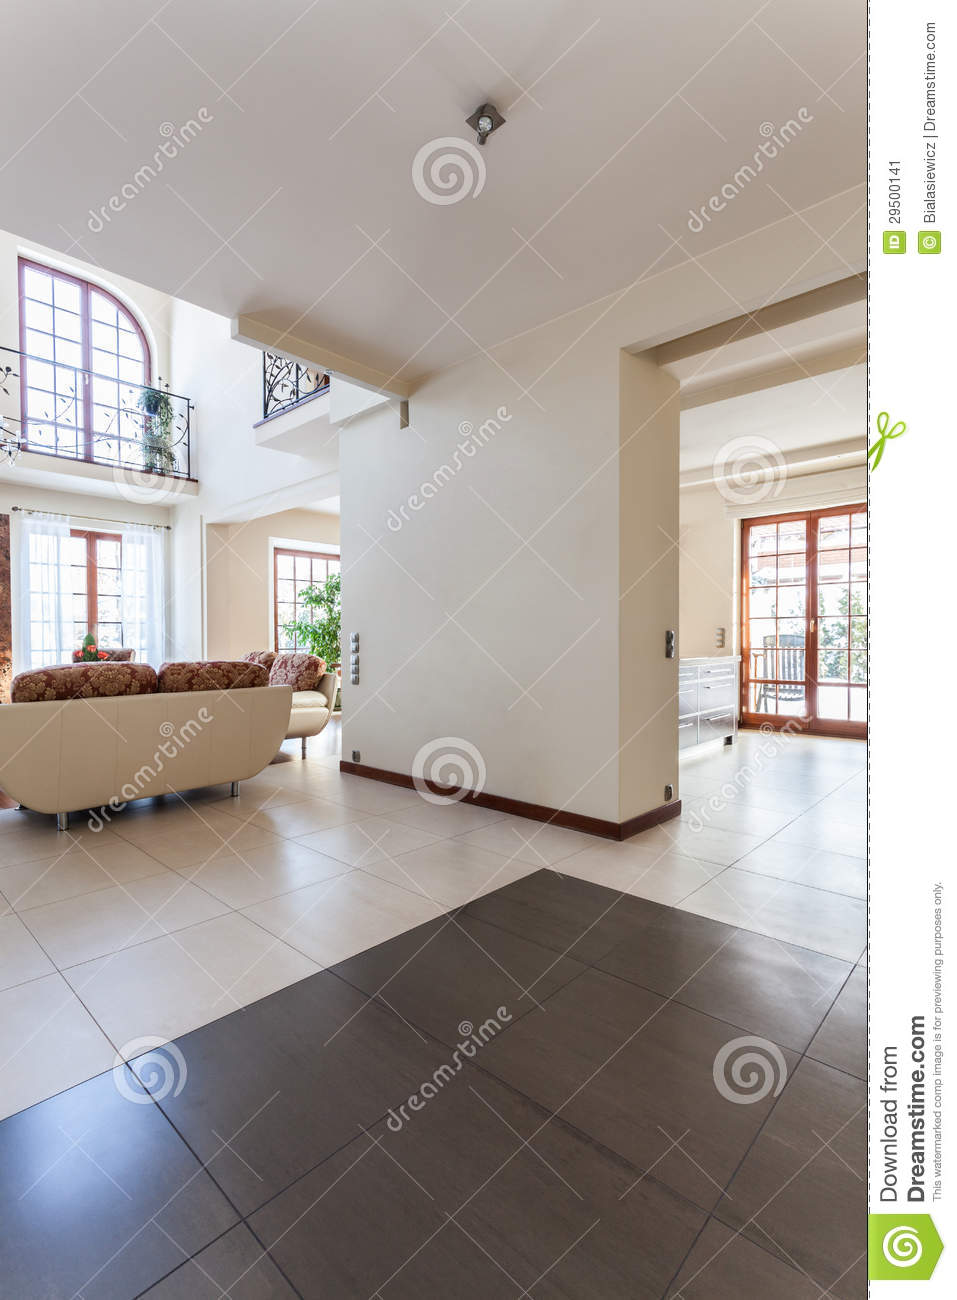 Maison chique int rieur image stock image 29500141 for Interieur maison neuve